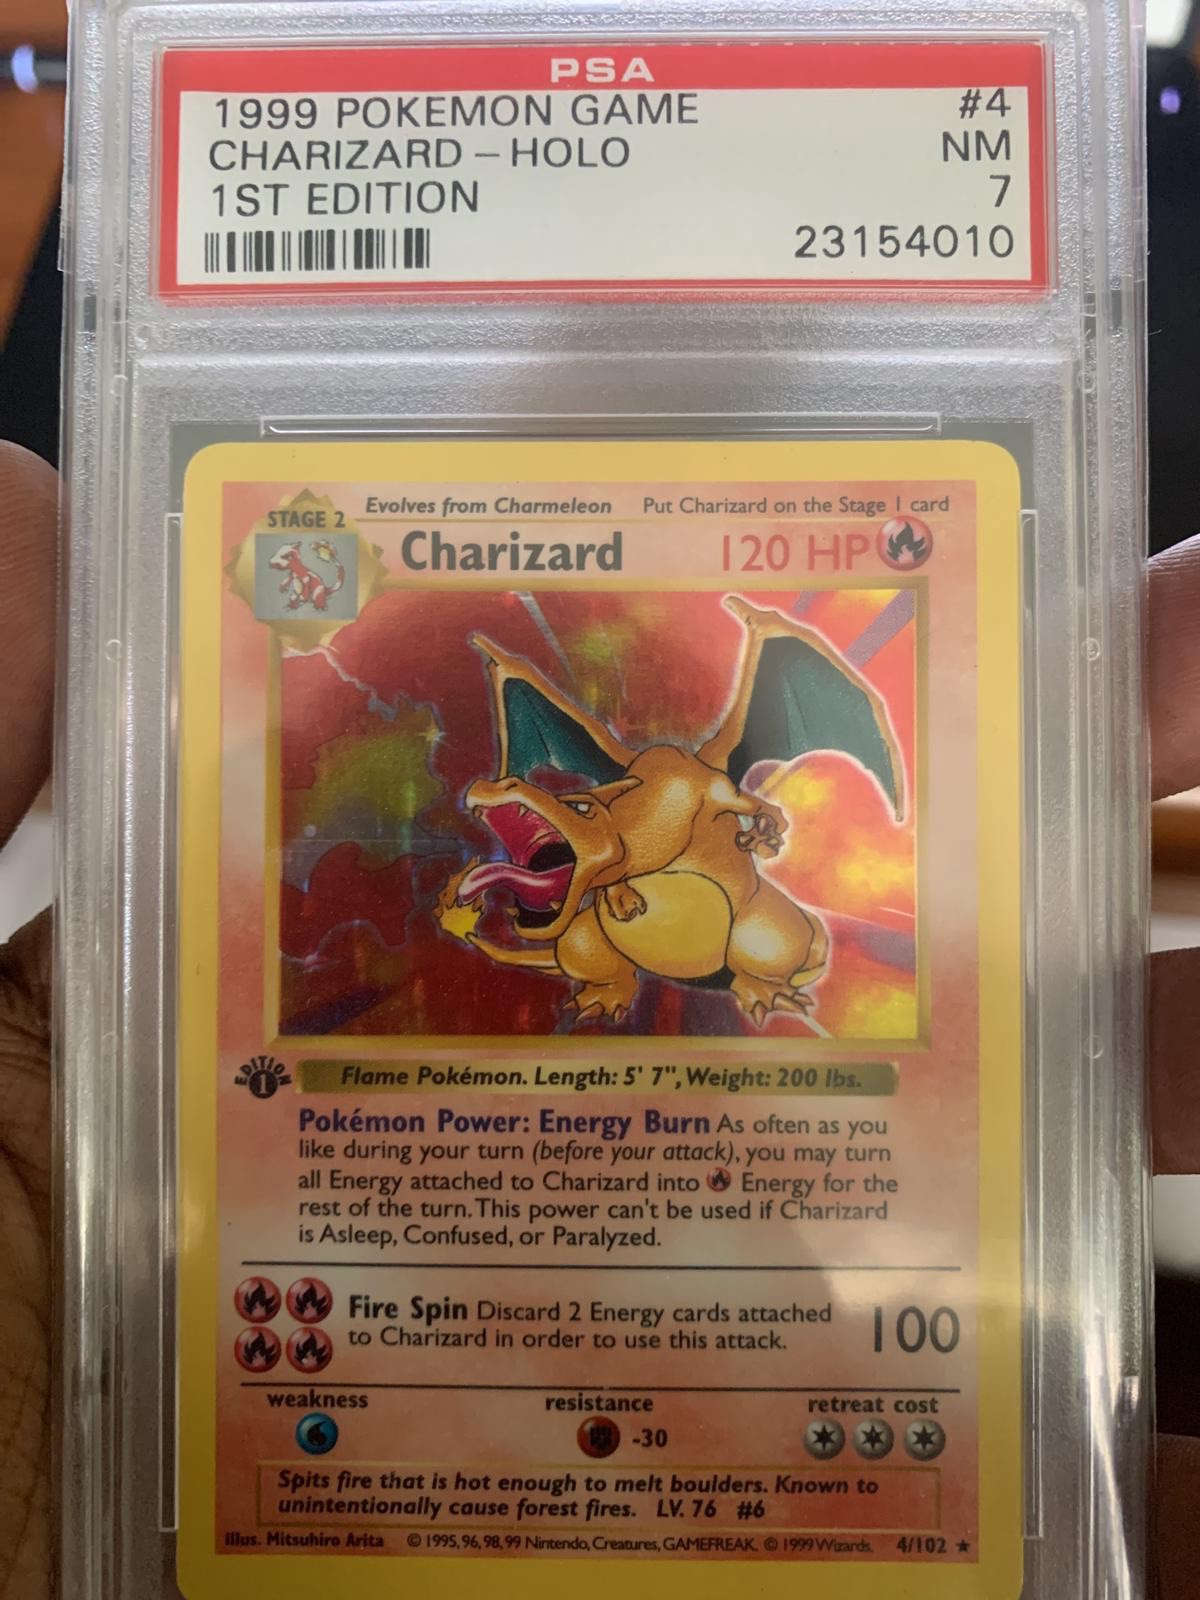 My Friend's Charizard Card, encased and graded with score 7 | photo taken by author